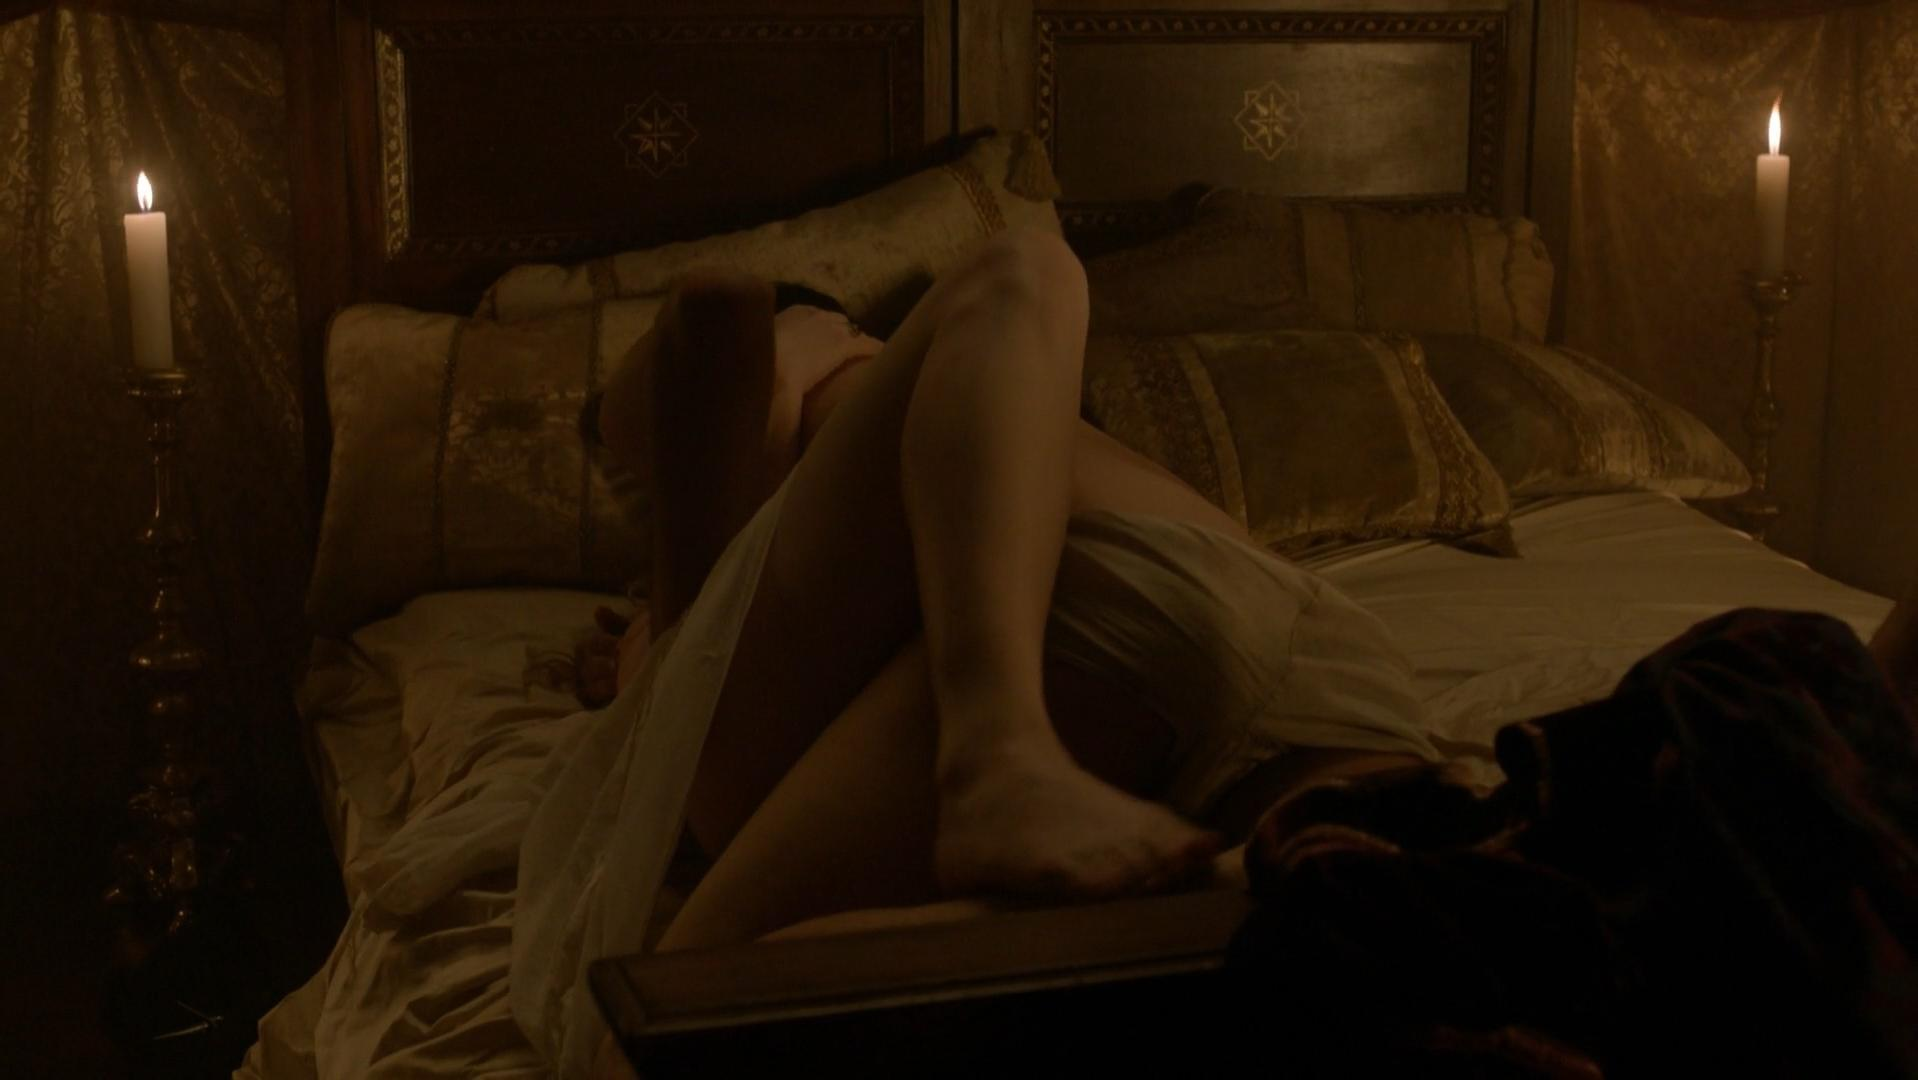 Maggie gyllenhaal naked full frontal hd